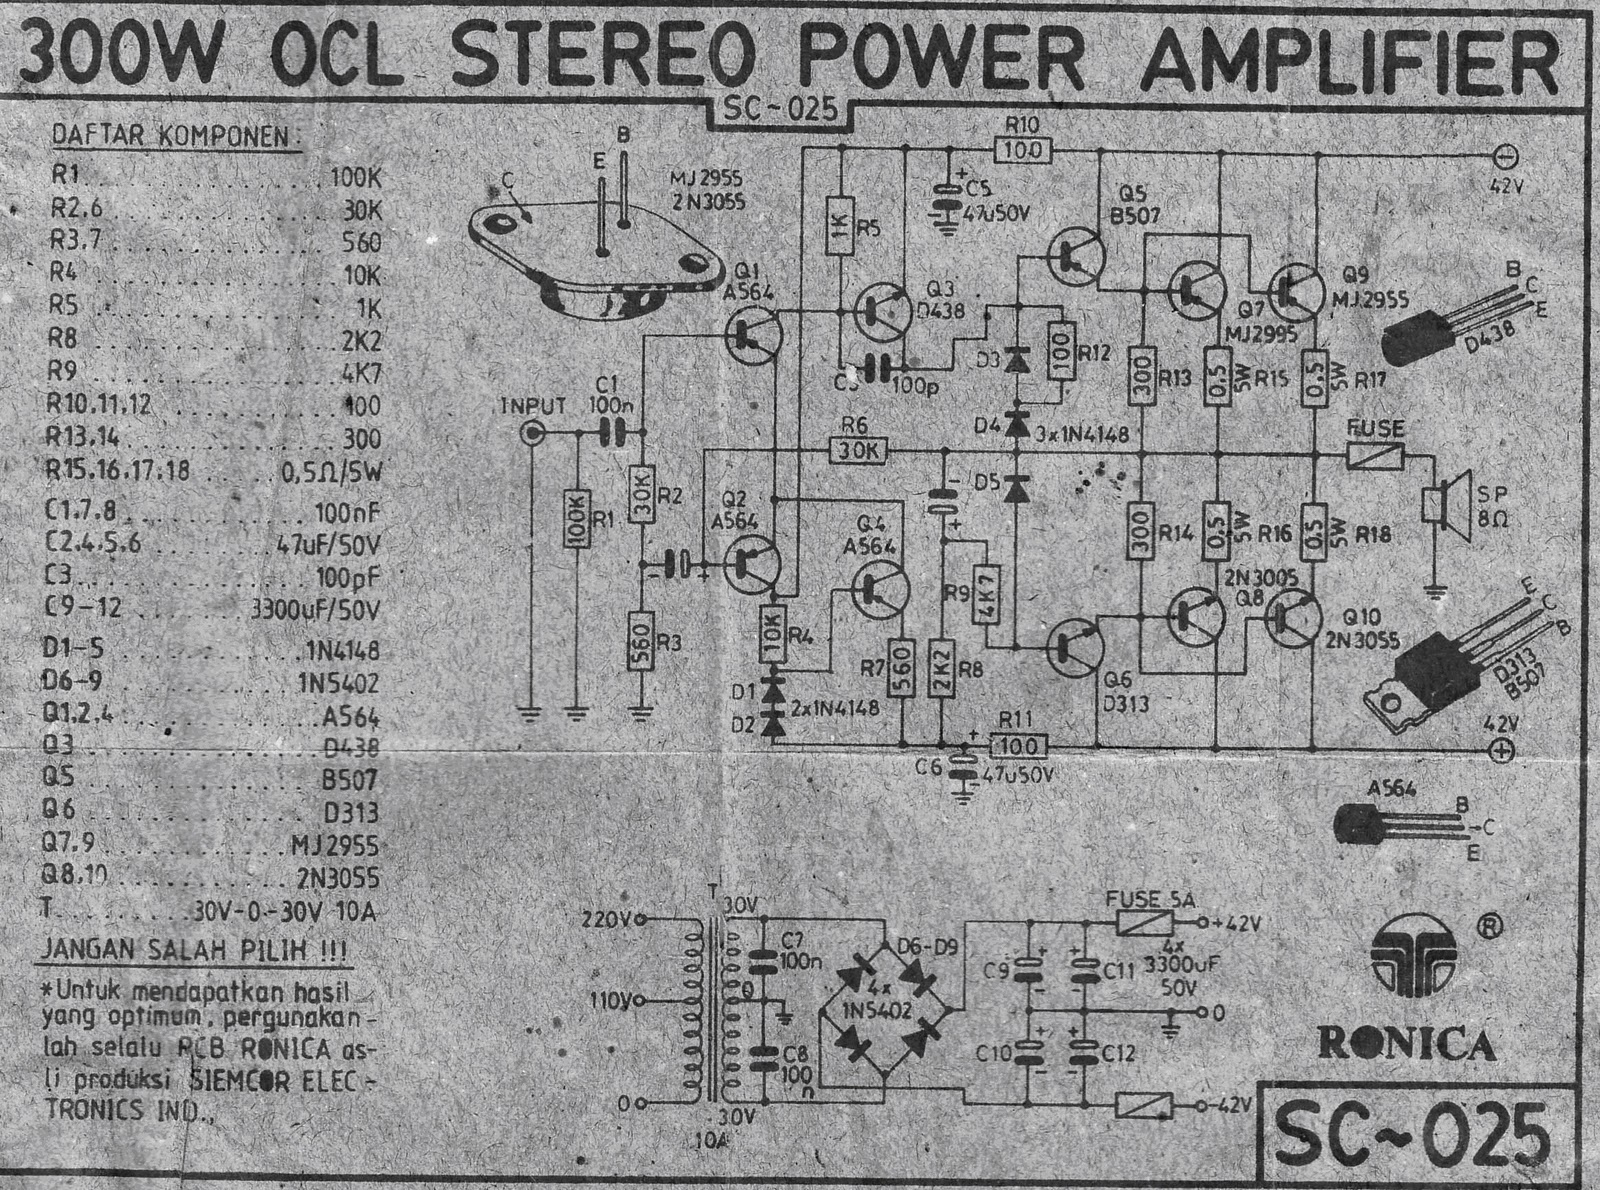 40w Amplifier Circuit Schematic 150w Power Wiring Library Ronica